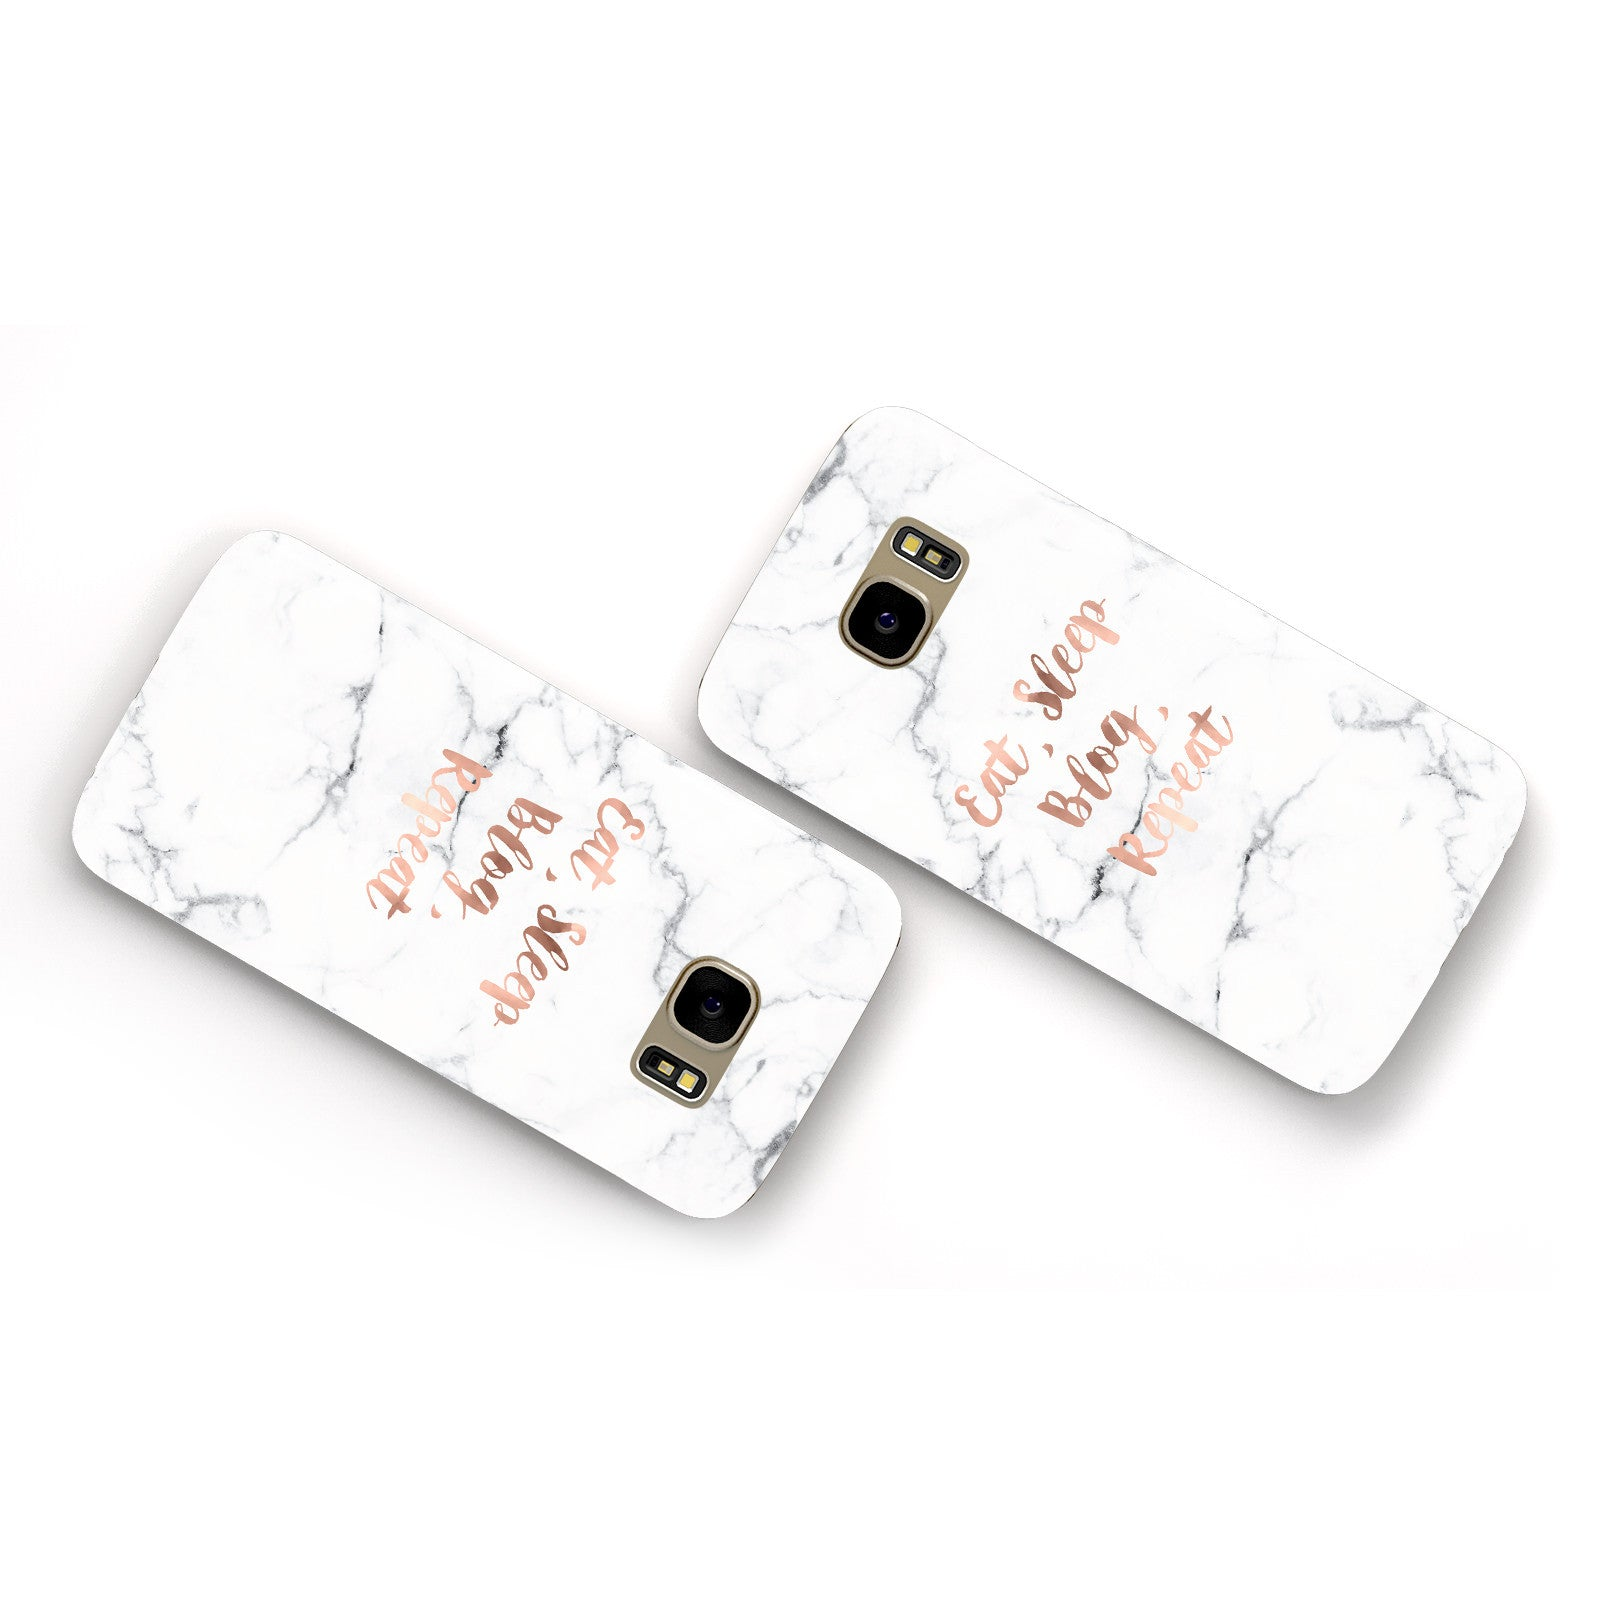 Eat Sleep Blog Repeat Marble Effect Samsung Galaxy Case Flat Overview